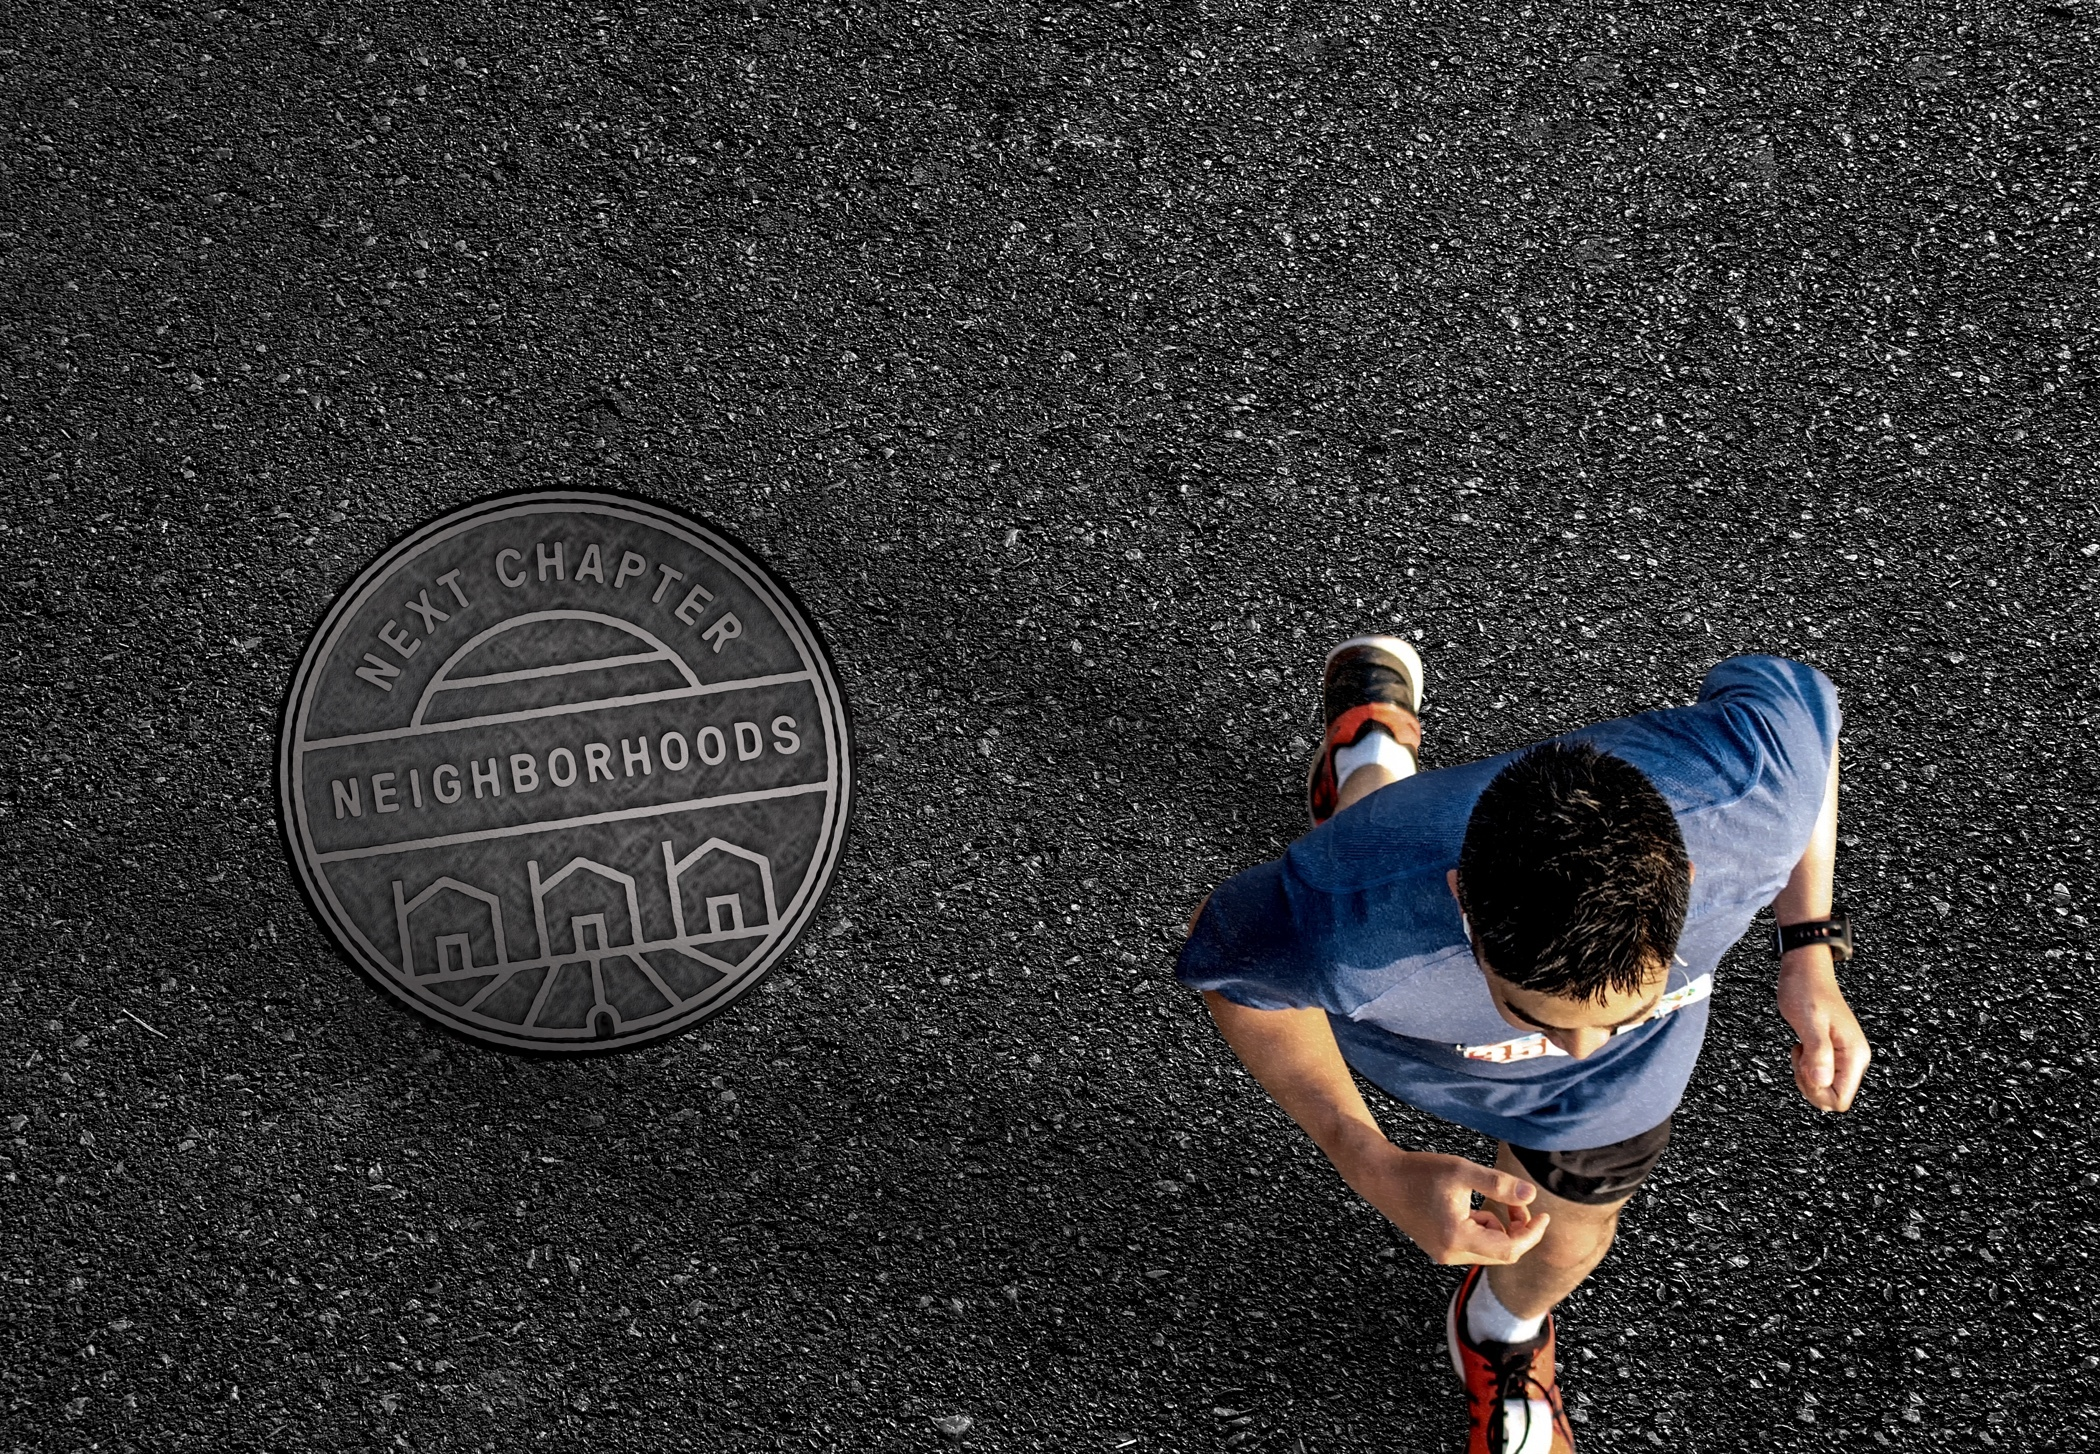 View from above as a jogger runs on a road past a Next Chapter branded manhole cover.